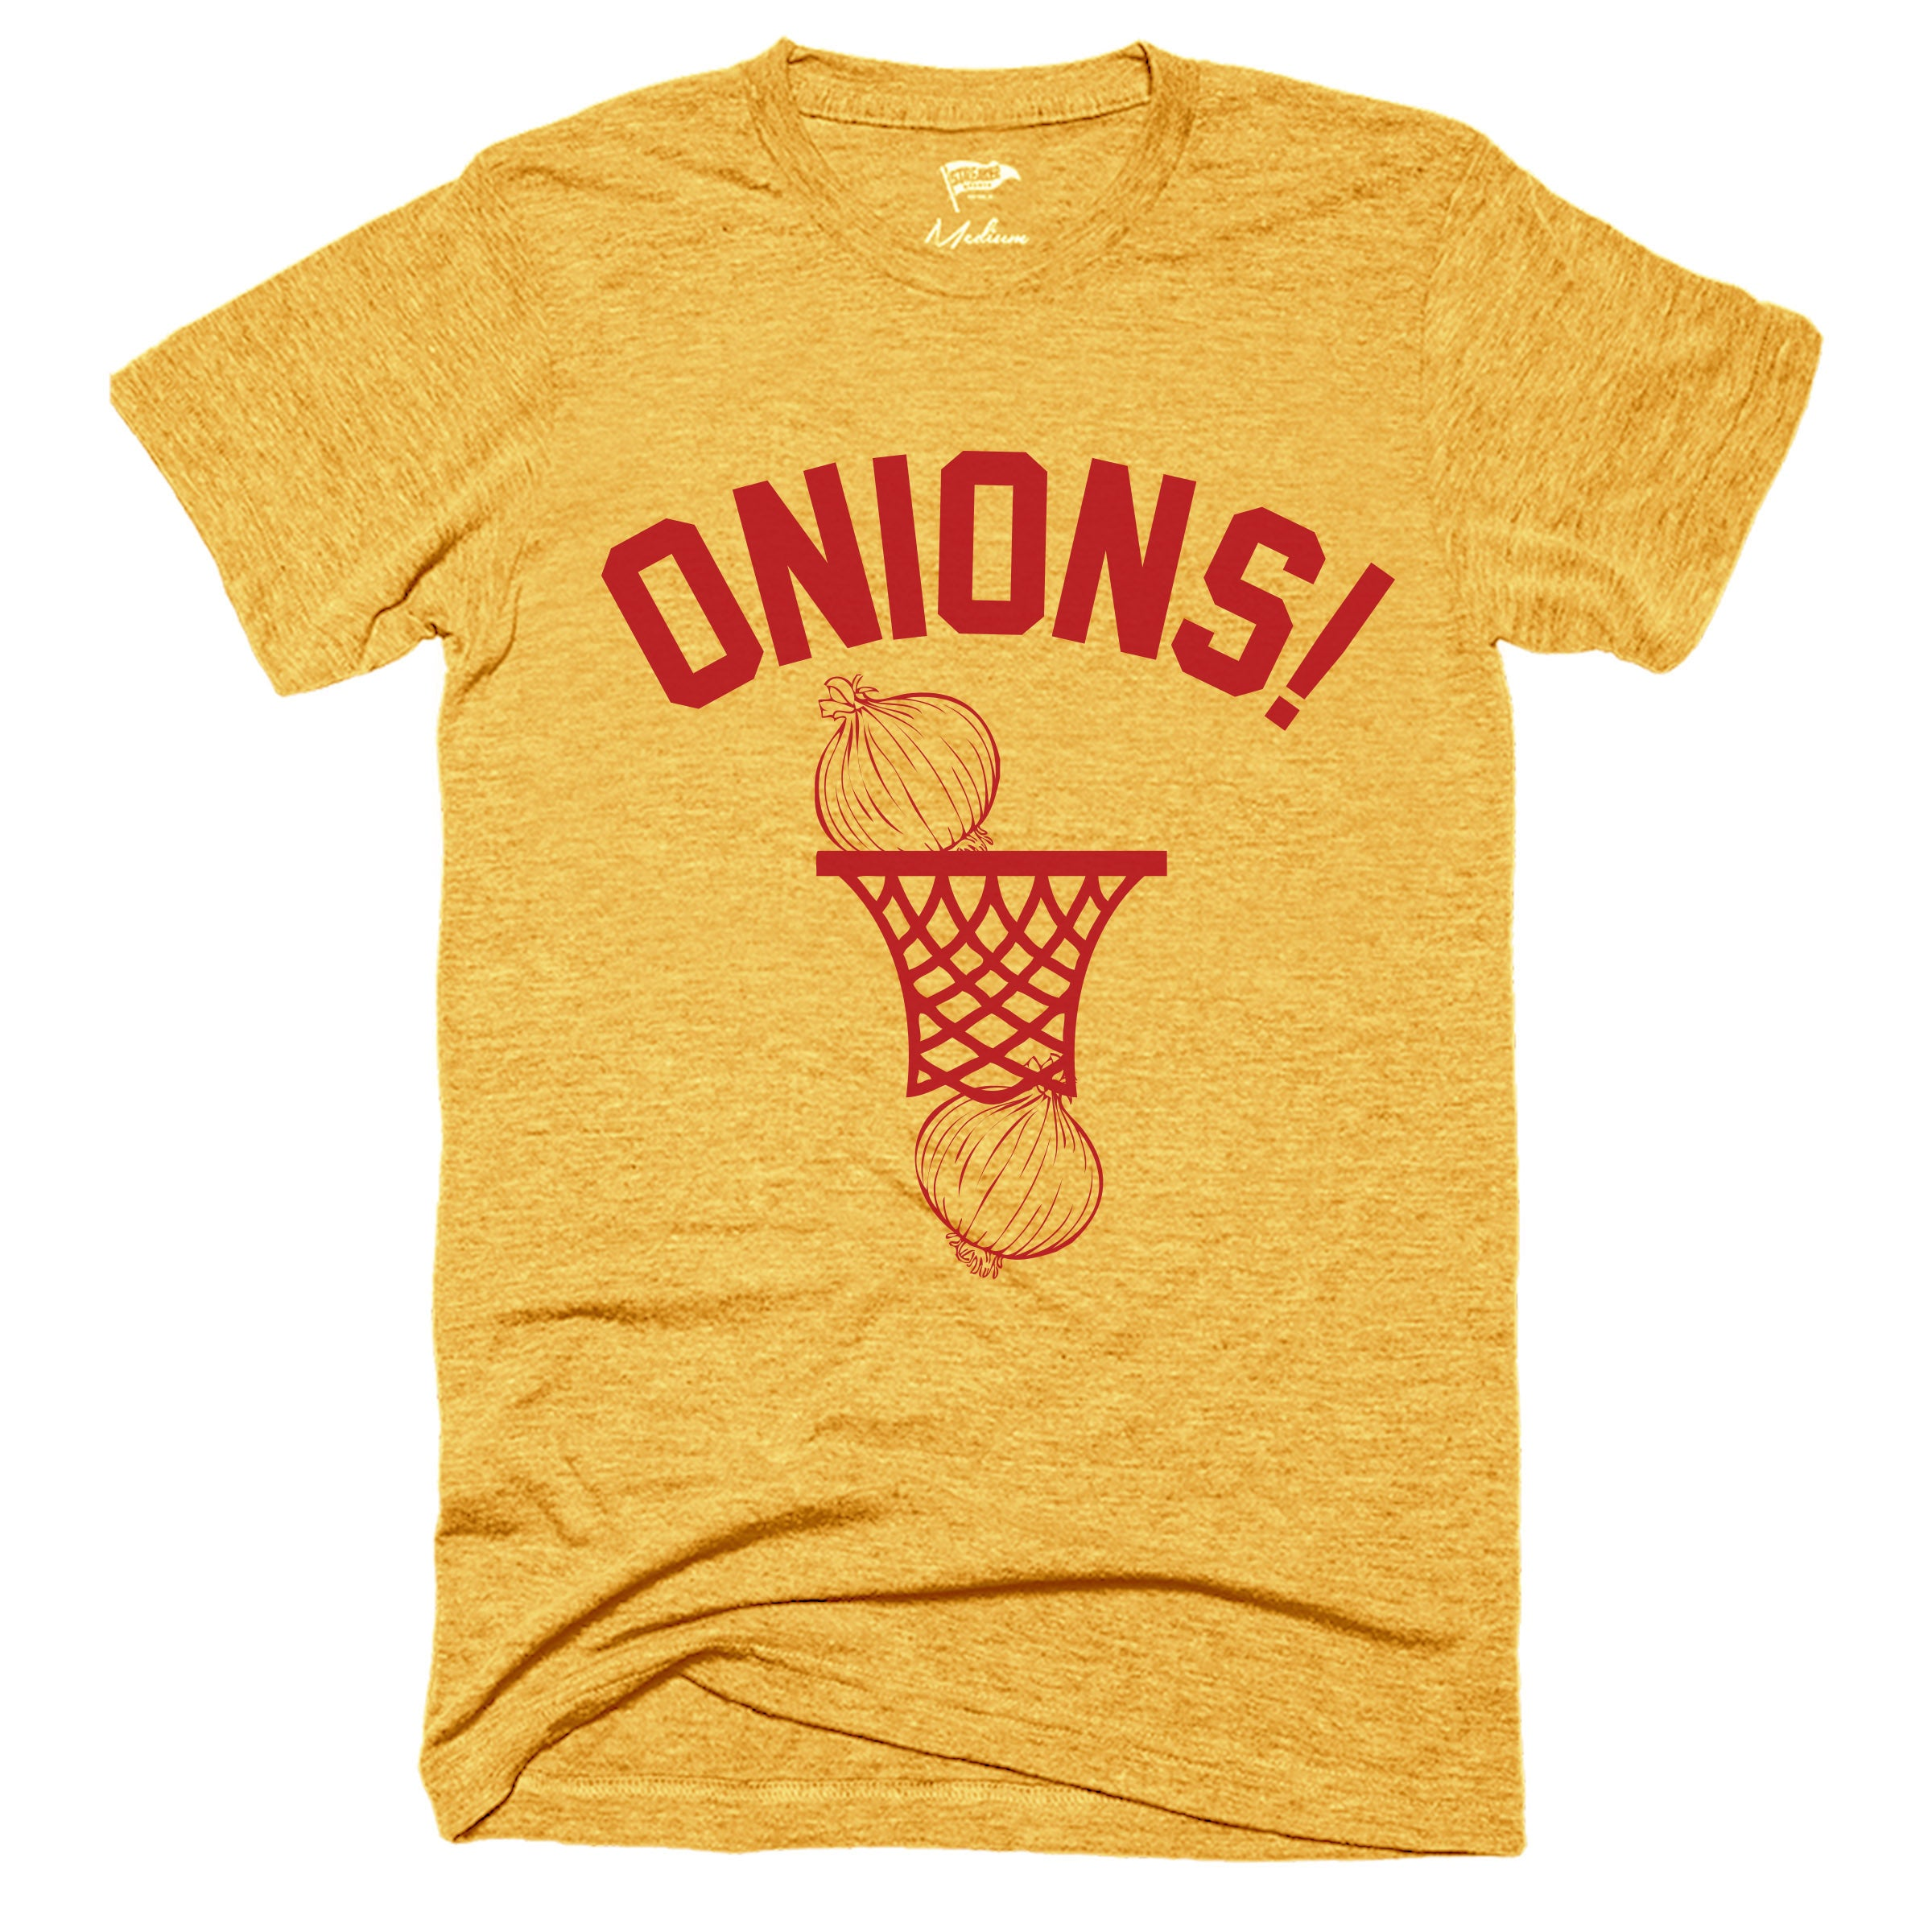 ONIONS! Gold & Red Hoop Tee - Streaker Sports